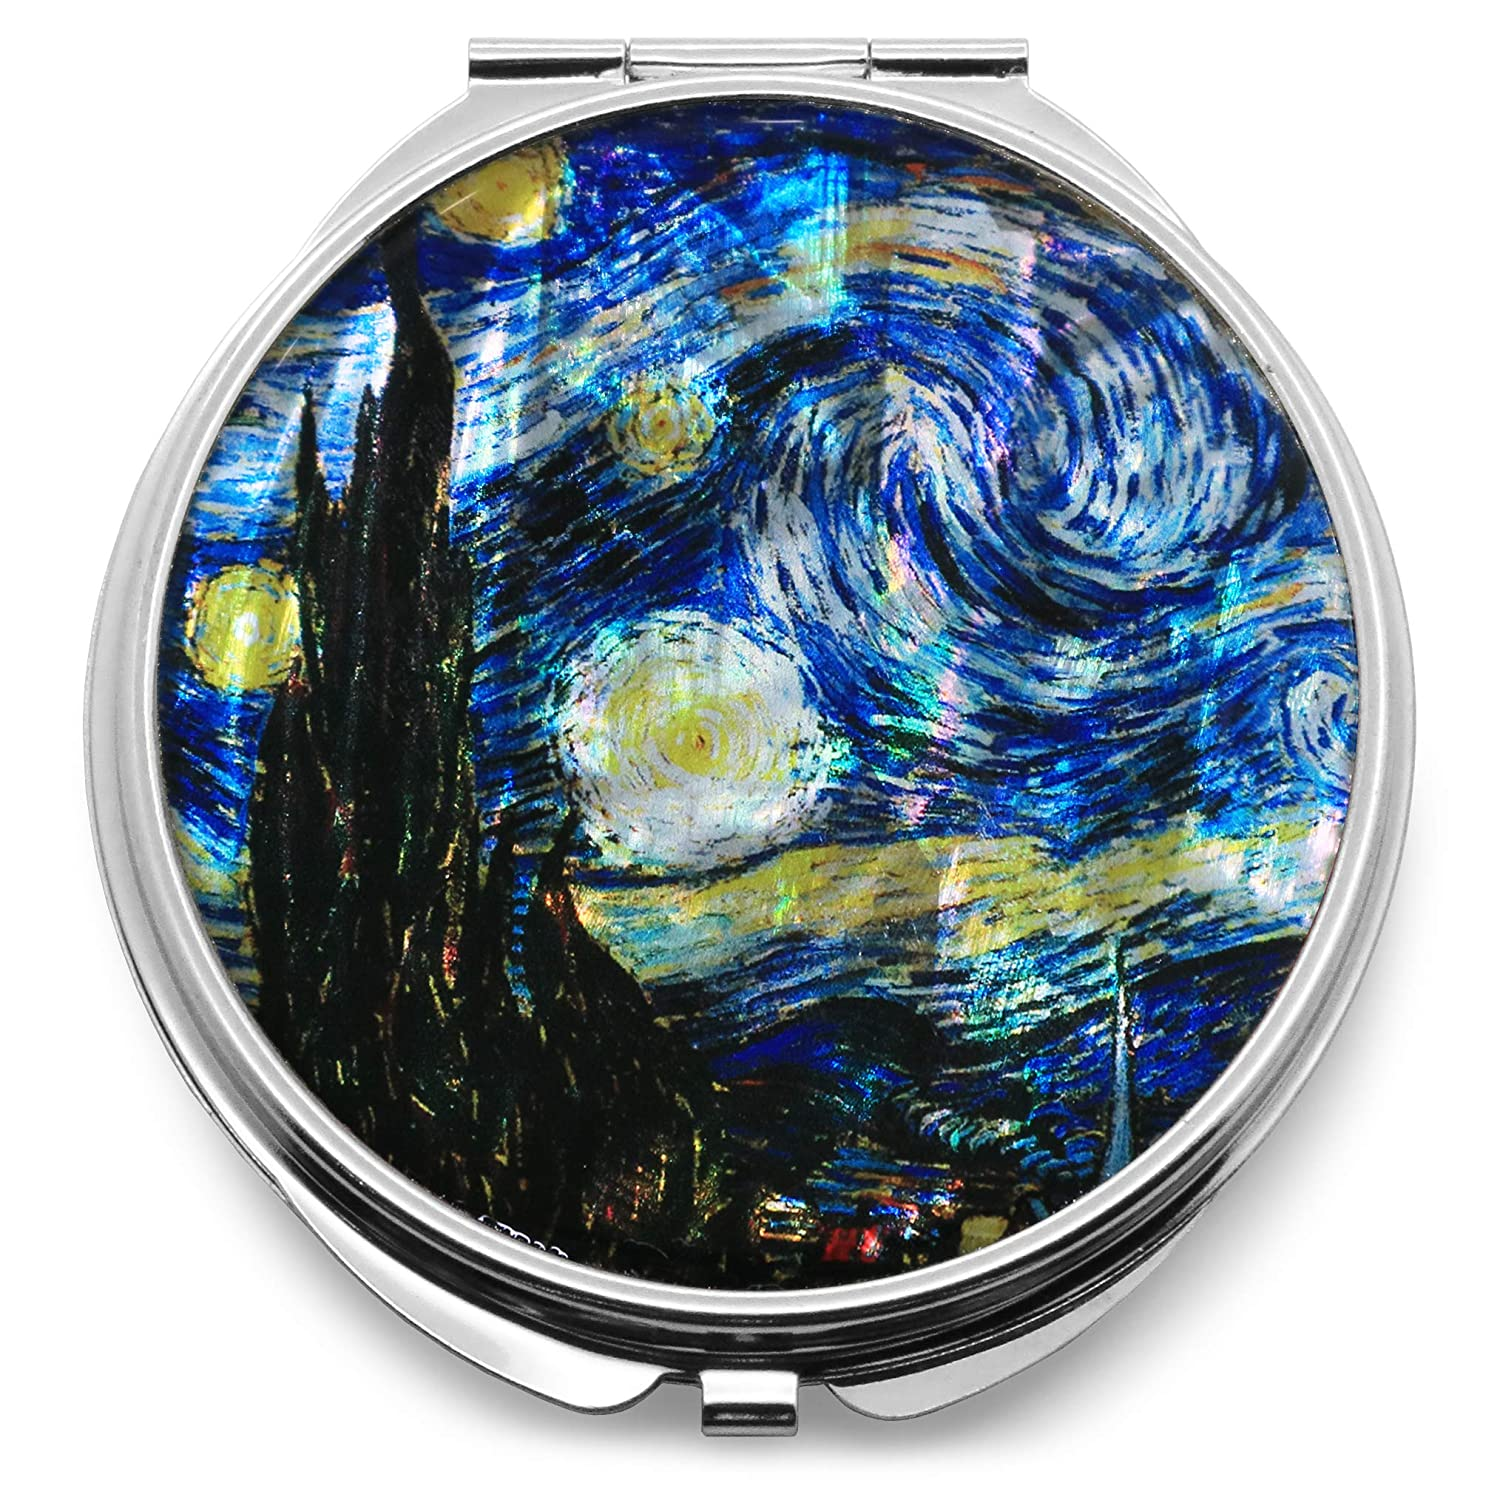 Compact Makeup Mirror Cosmetic Korean Mother of Pearl Lacquered Vincent Van Gogh The Starry Night Blue 2